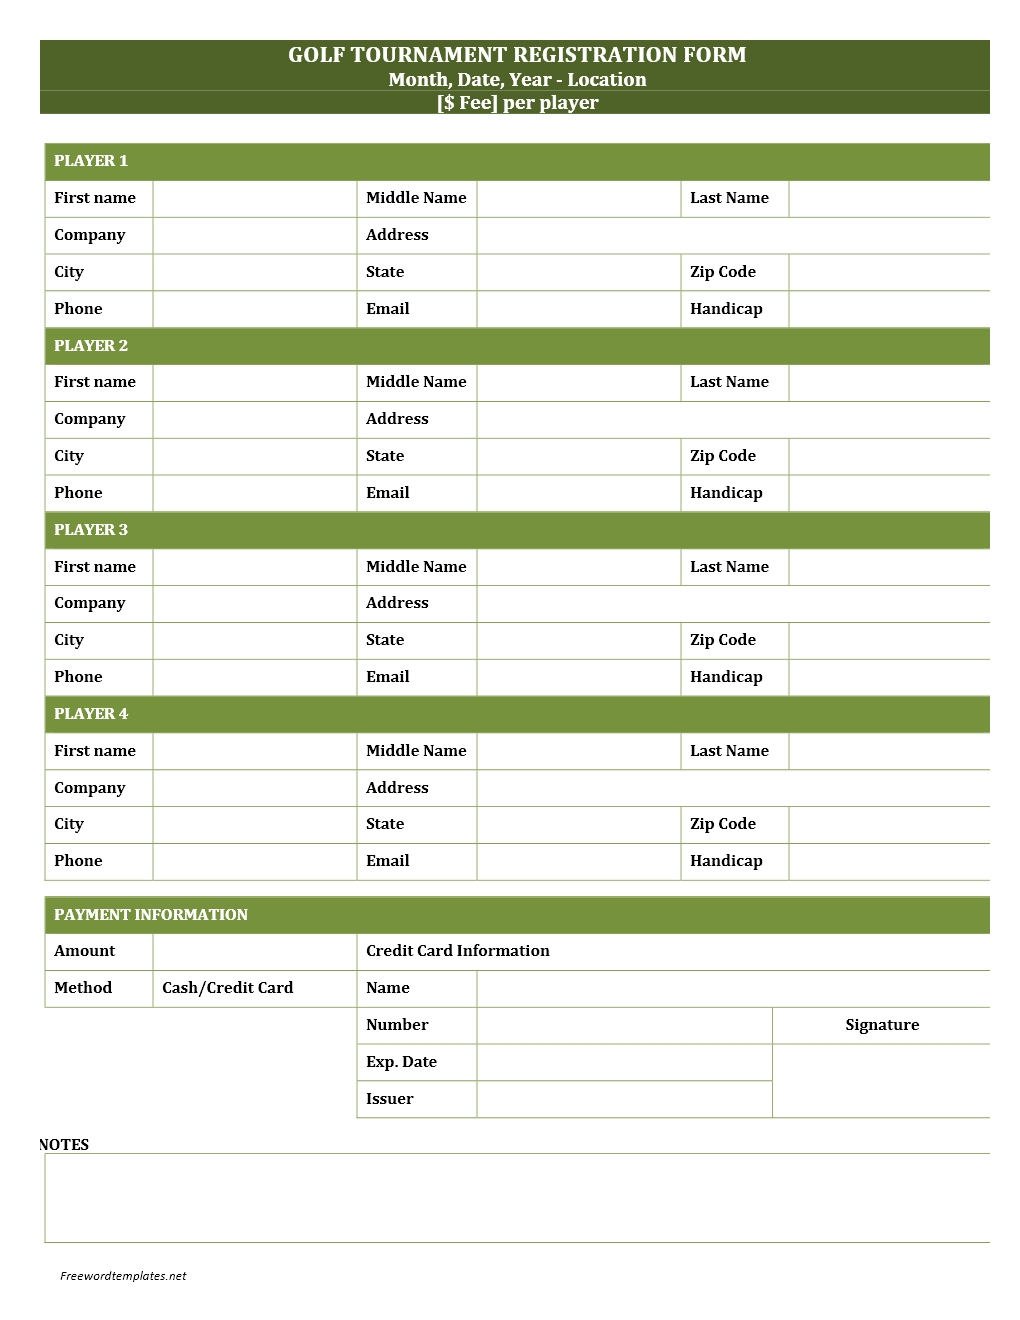 golf tour nt registration form wordtemplates net golf tour nt registration form template